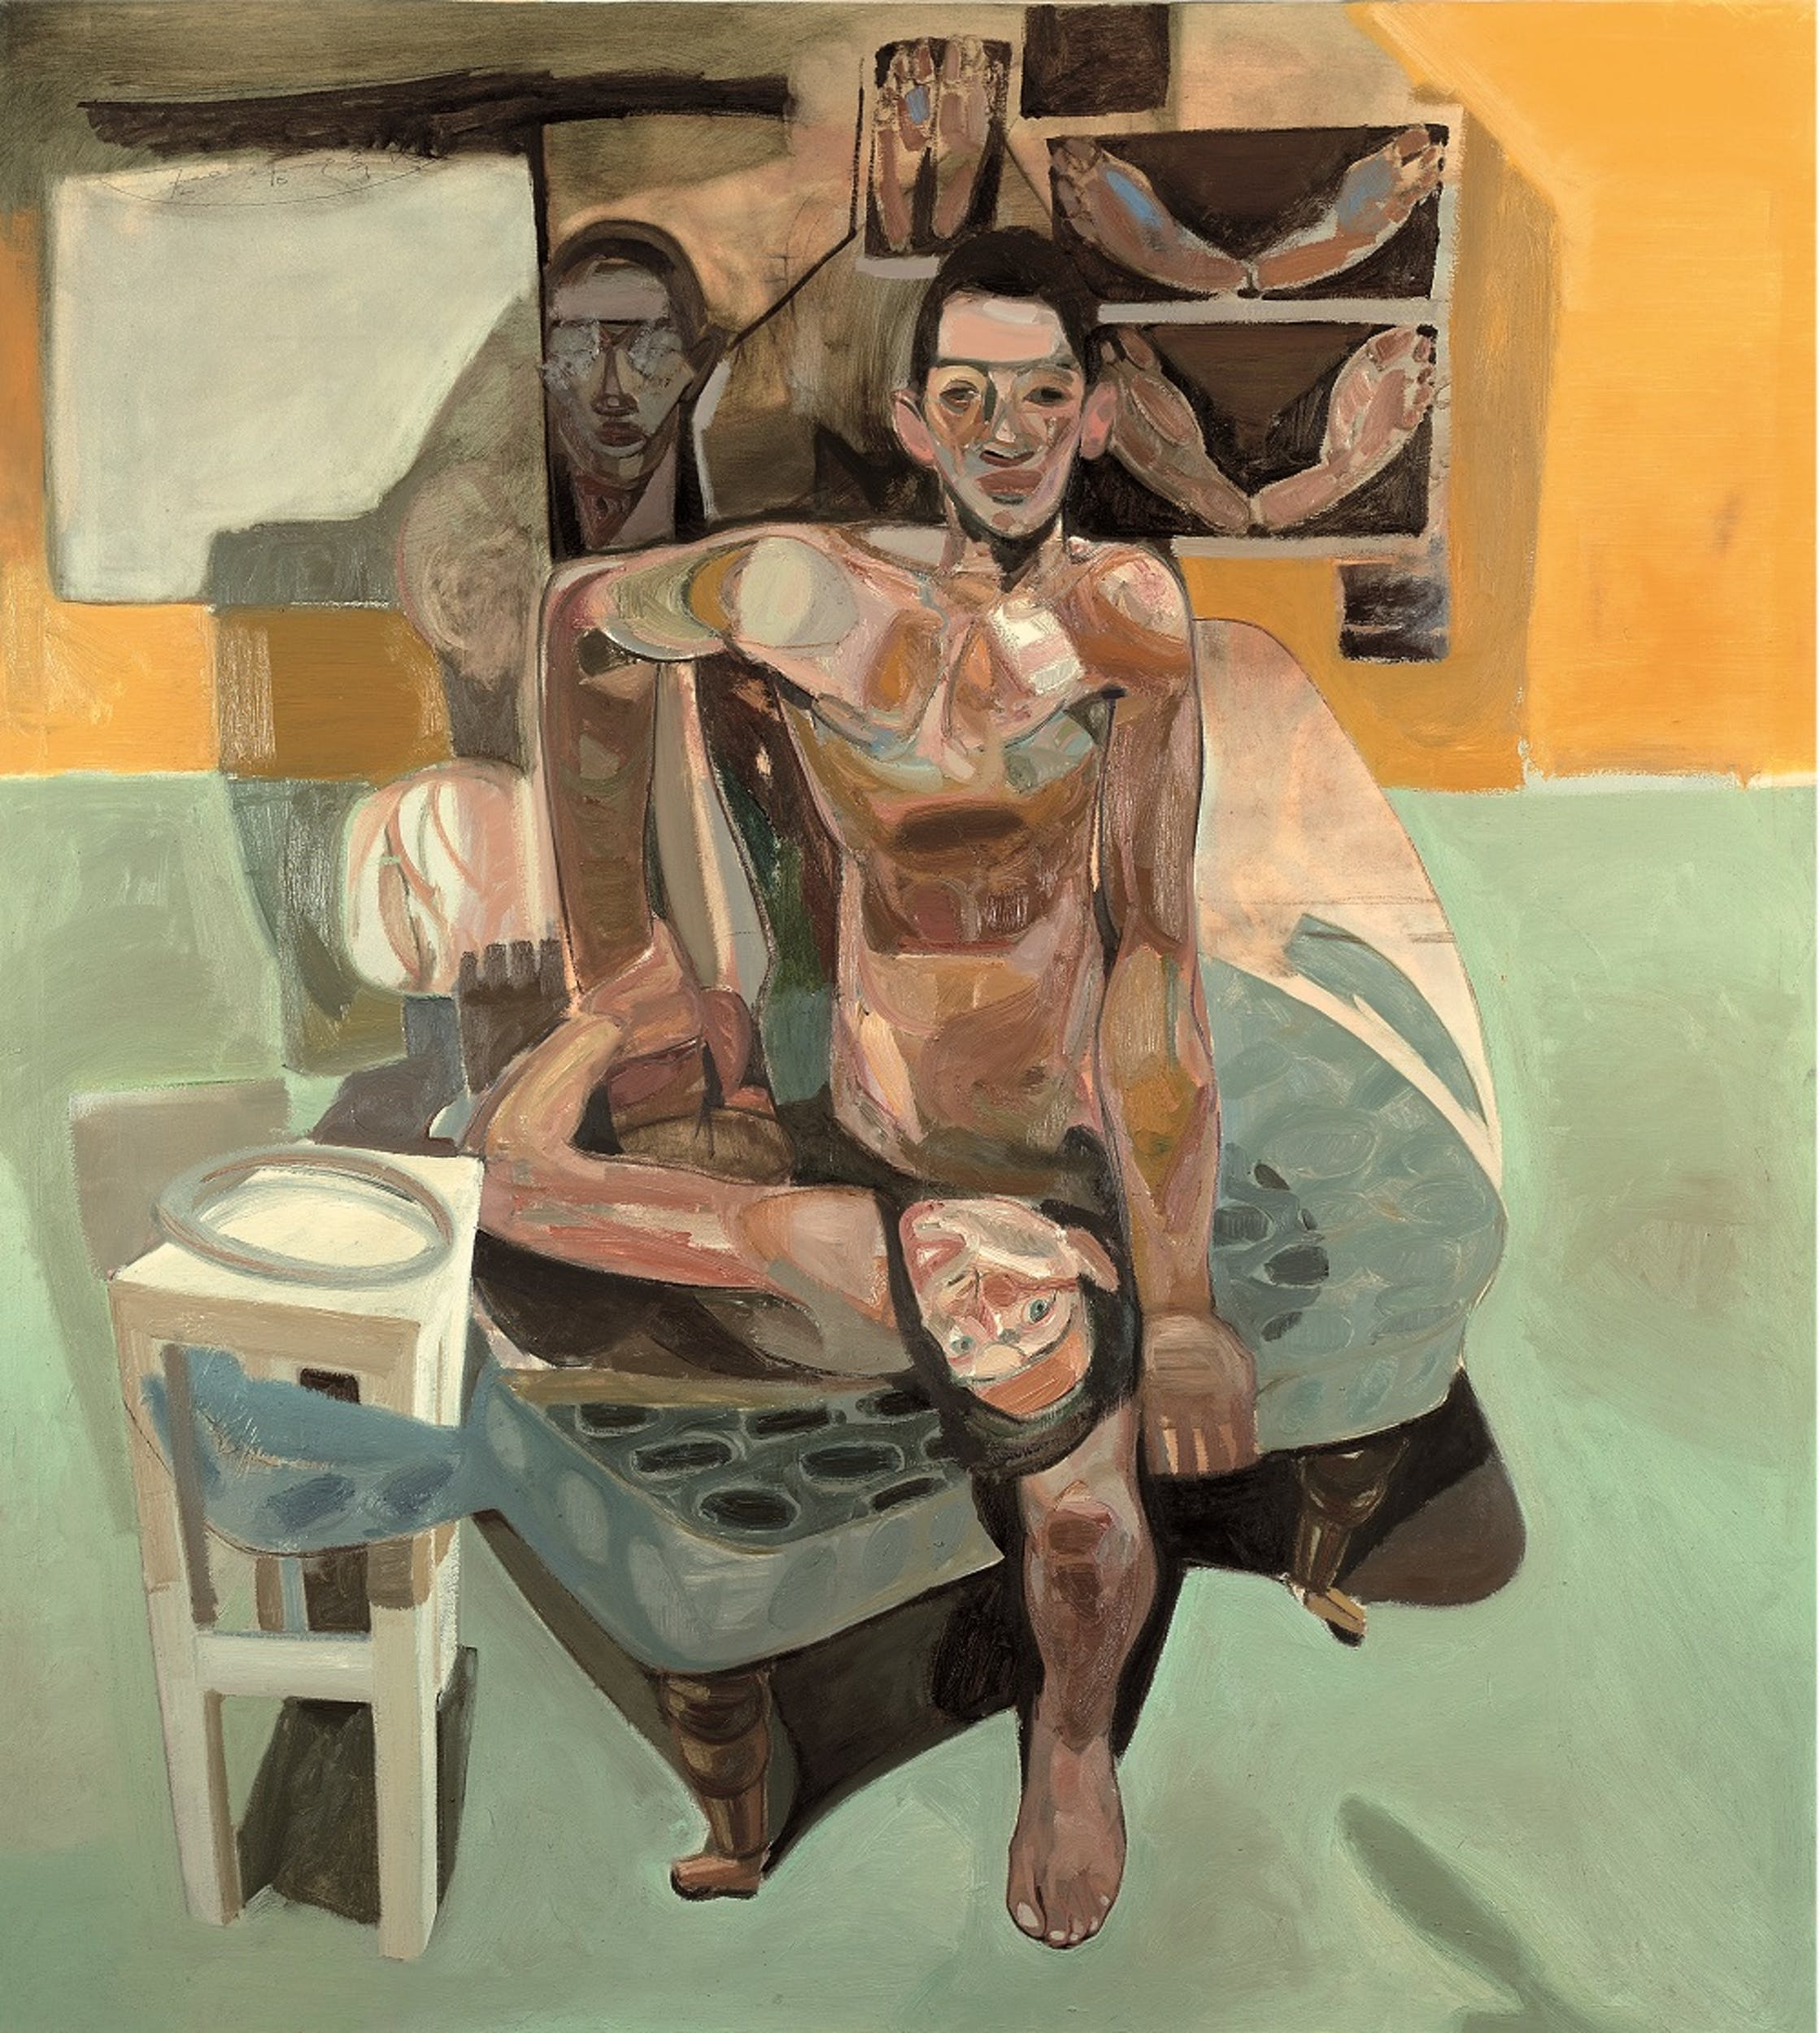 Tesfaye Urgessa, Die Beobachteten 18 (The observed 18, L'osservato 18), 2018, olio su tela, oil on canvas.